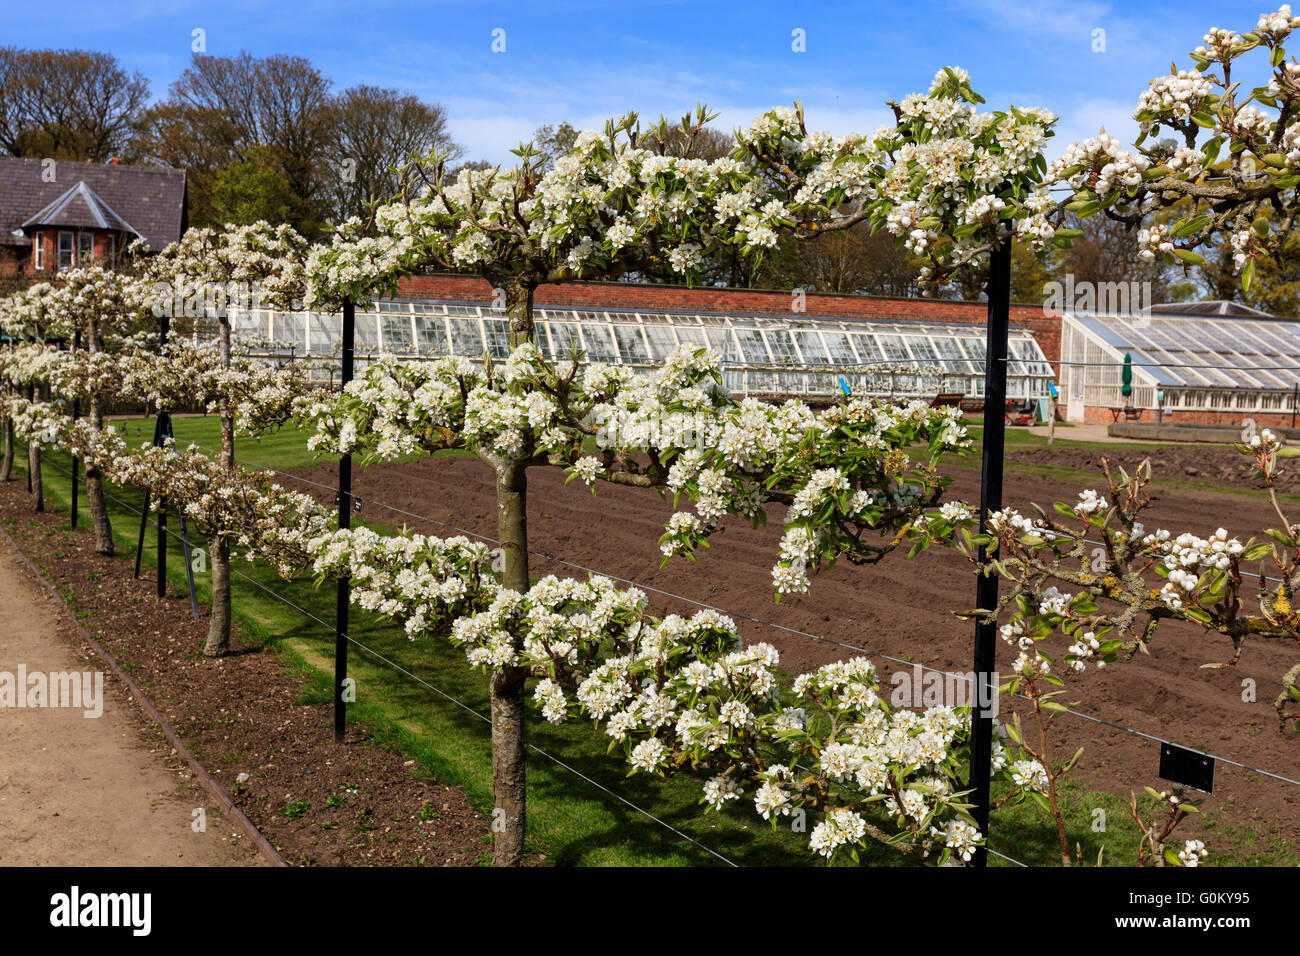 Espaliered blossoming fruit trees in a garden during springtime. - Stock Image